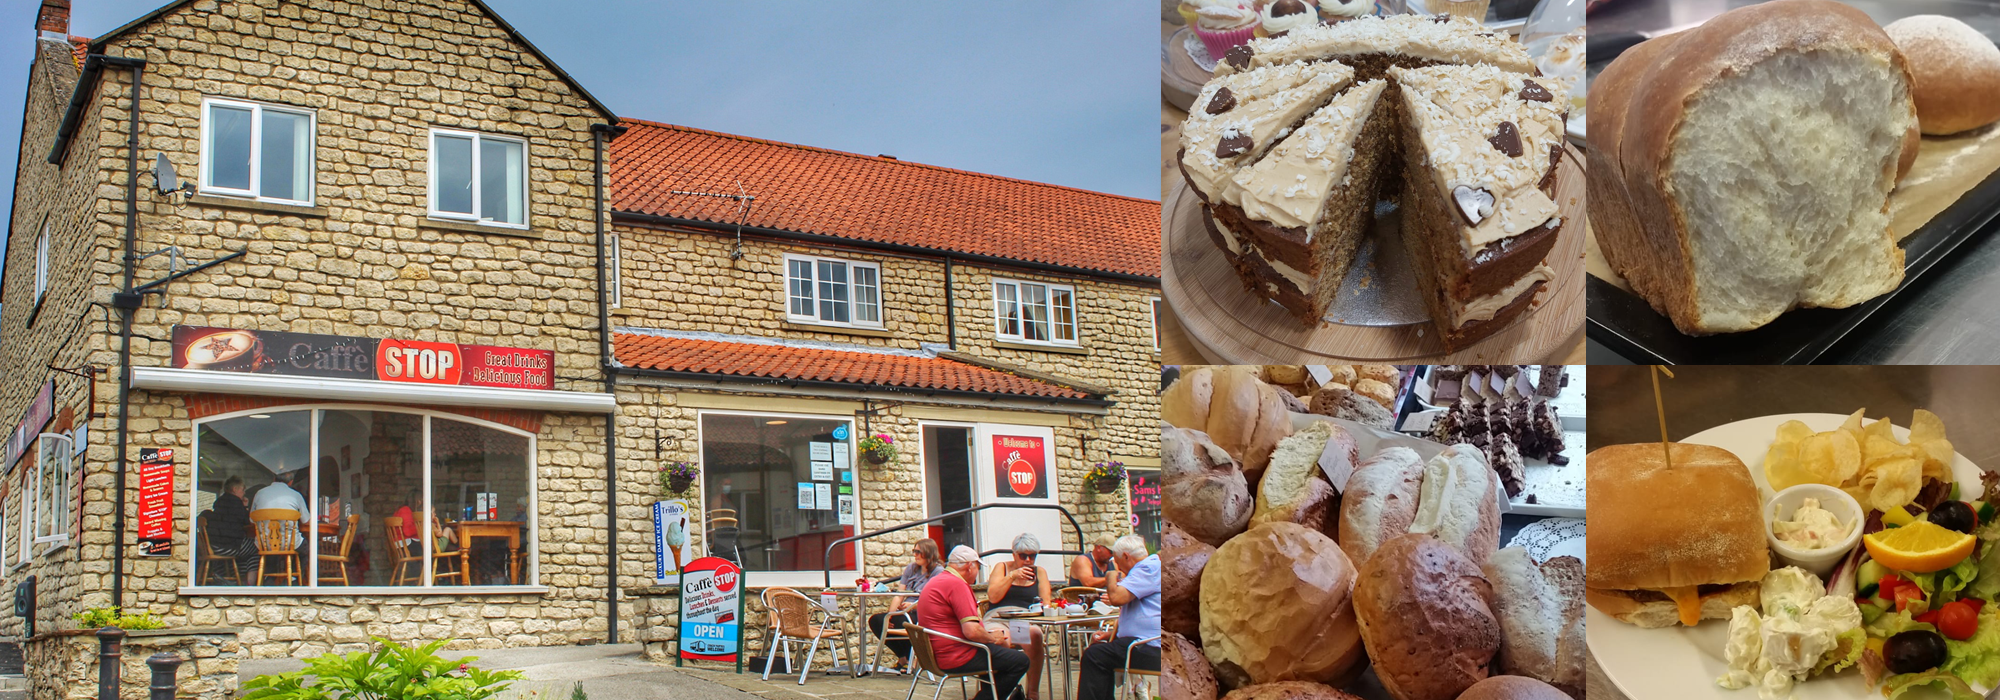 Caffe Stop :: Pickering, North Yorkshire